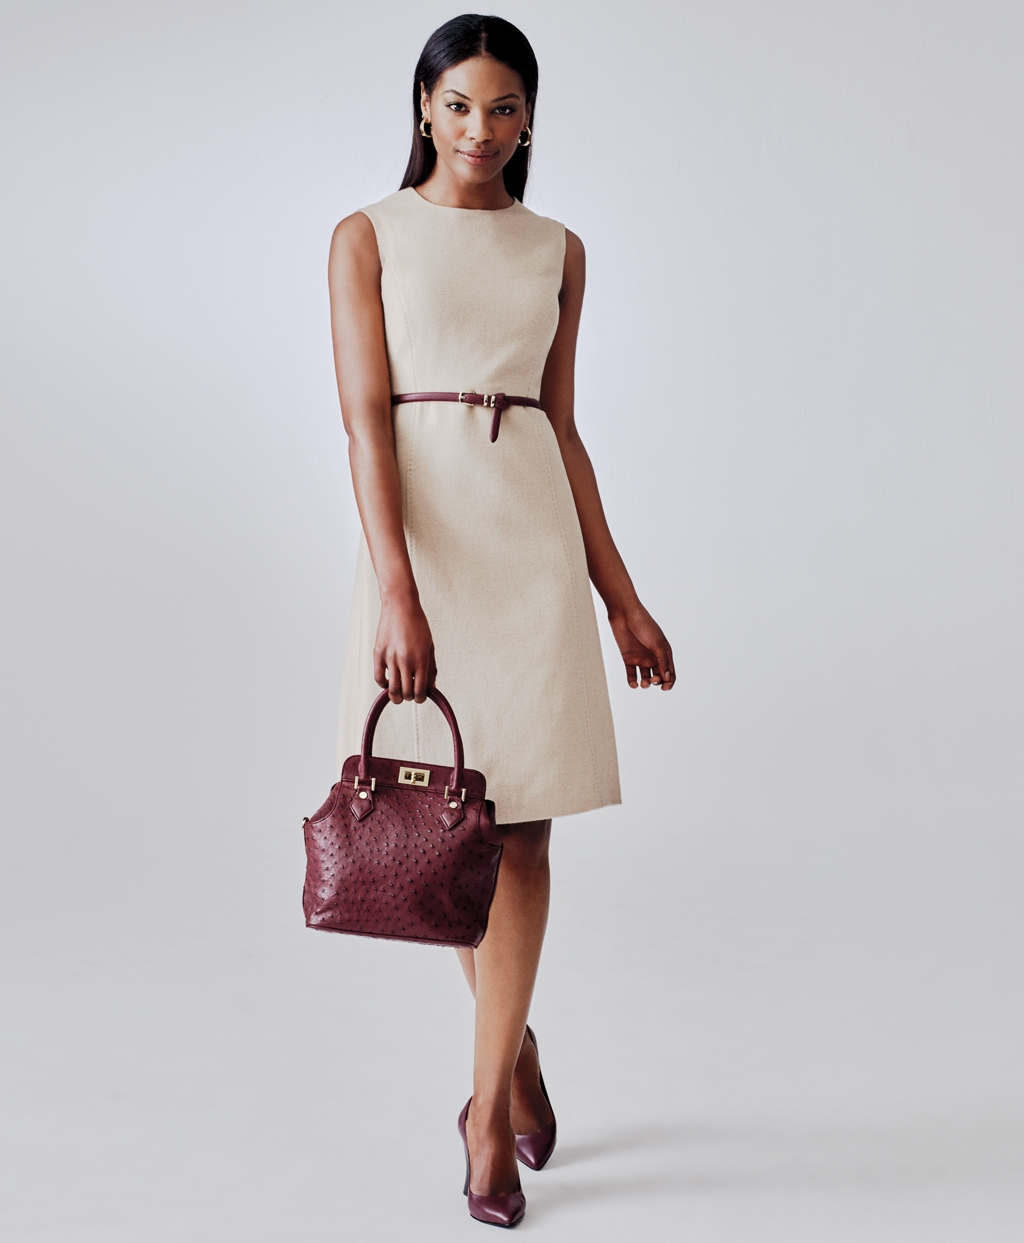 e541c79c21221e Lyst - Brooks Brothers Camel Hair Sleeveless Dress in Natural